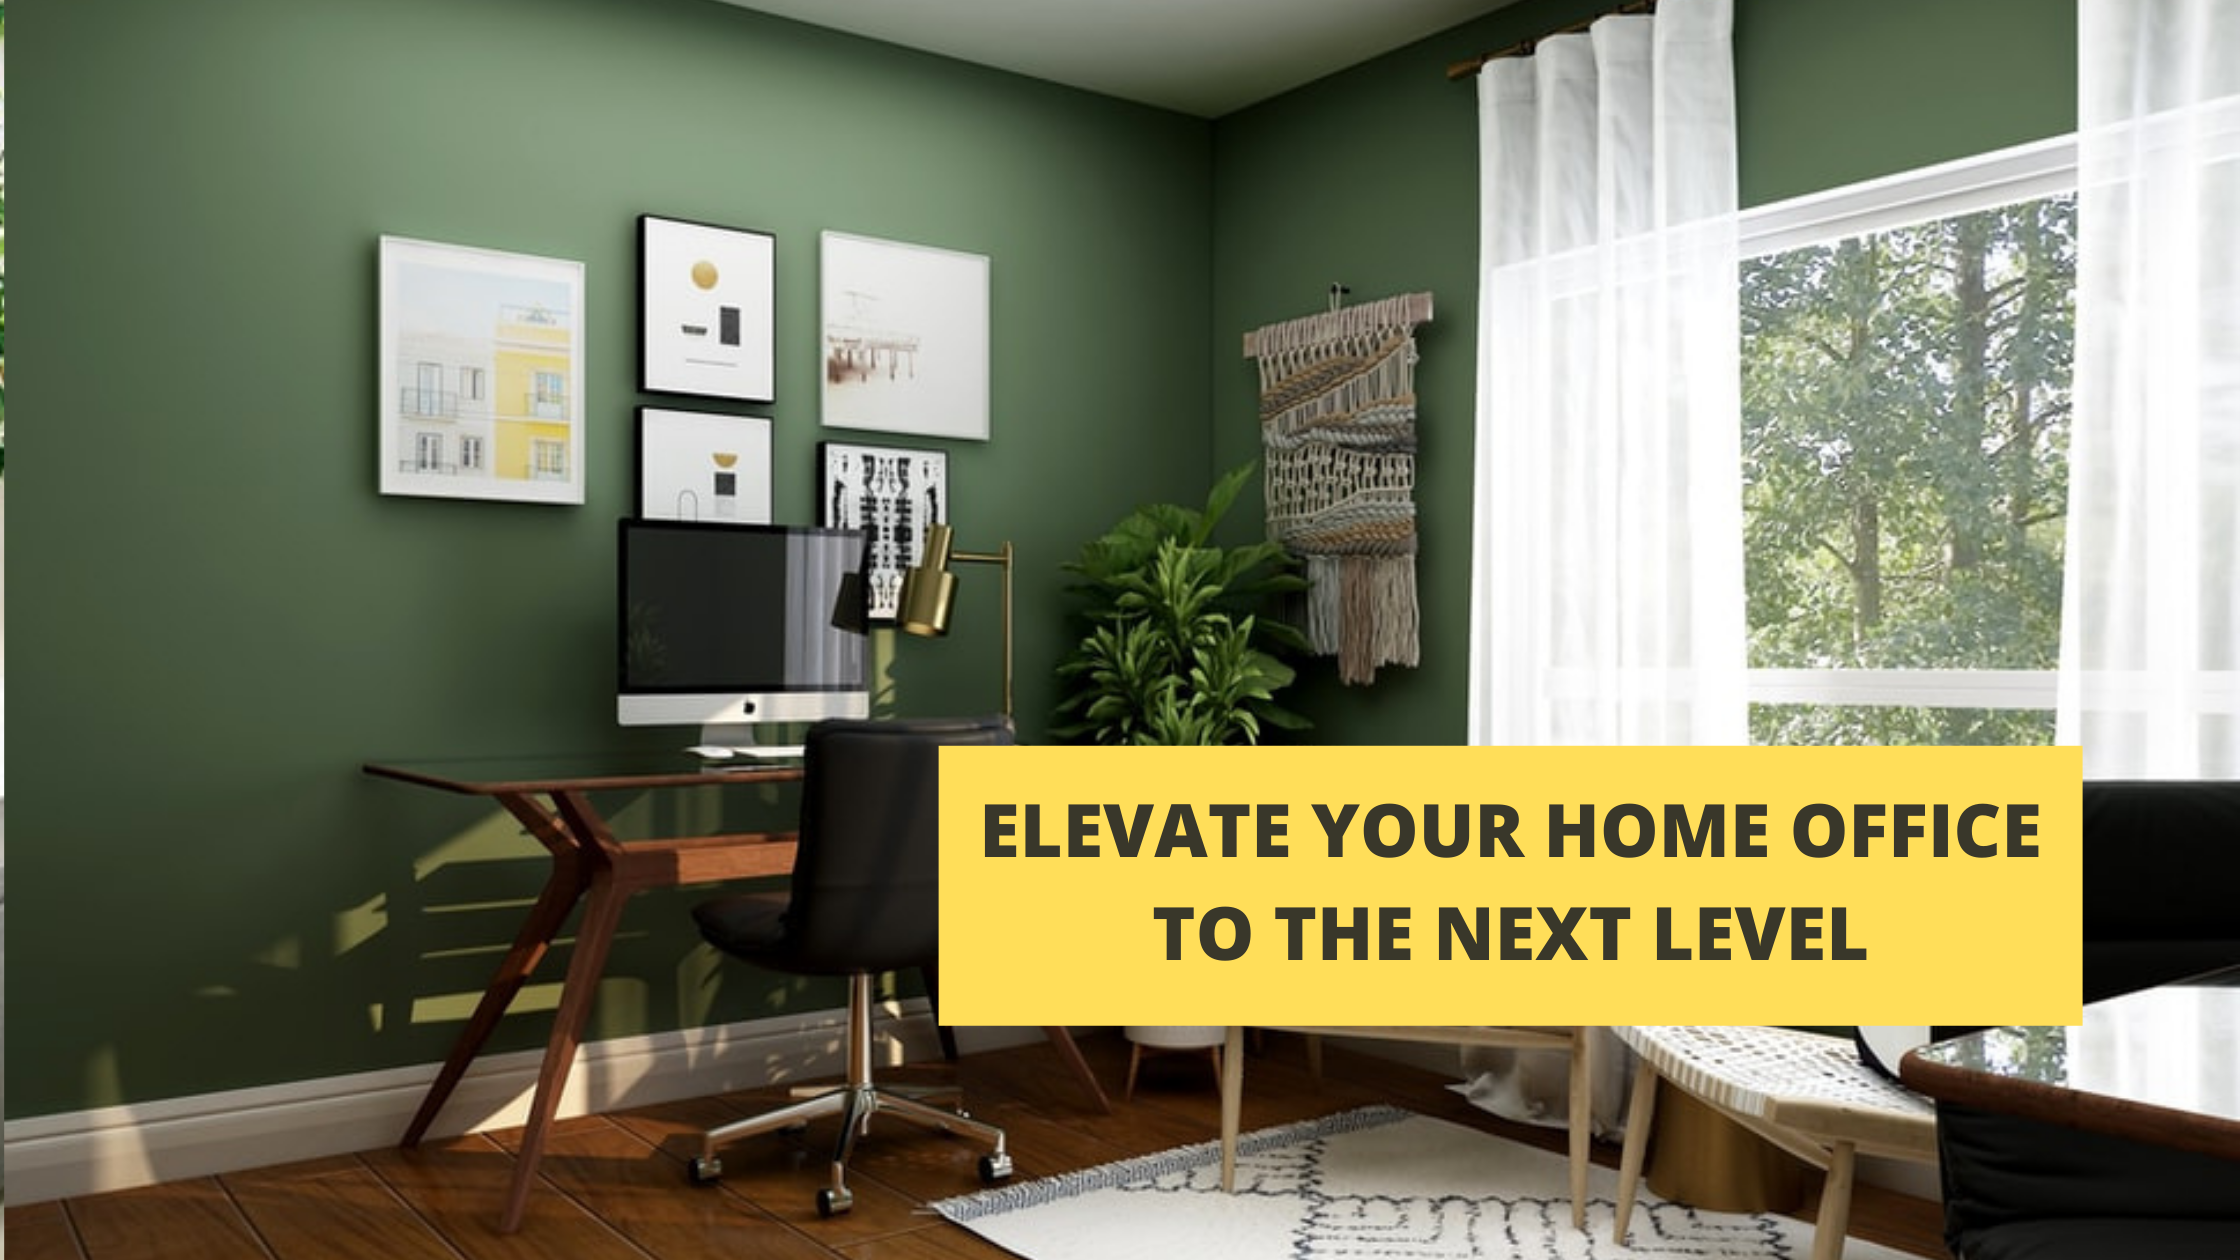 ELEVATE YOUR HOME OFFICE TO THE NEXT LEVEL